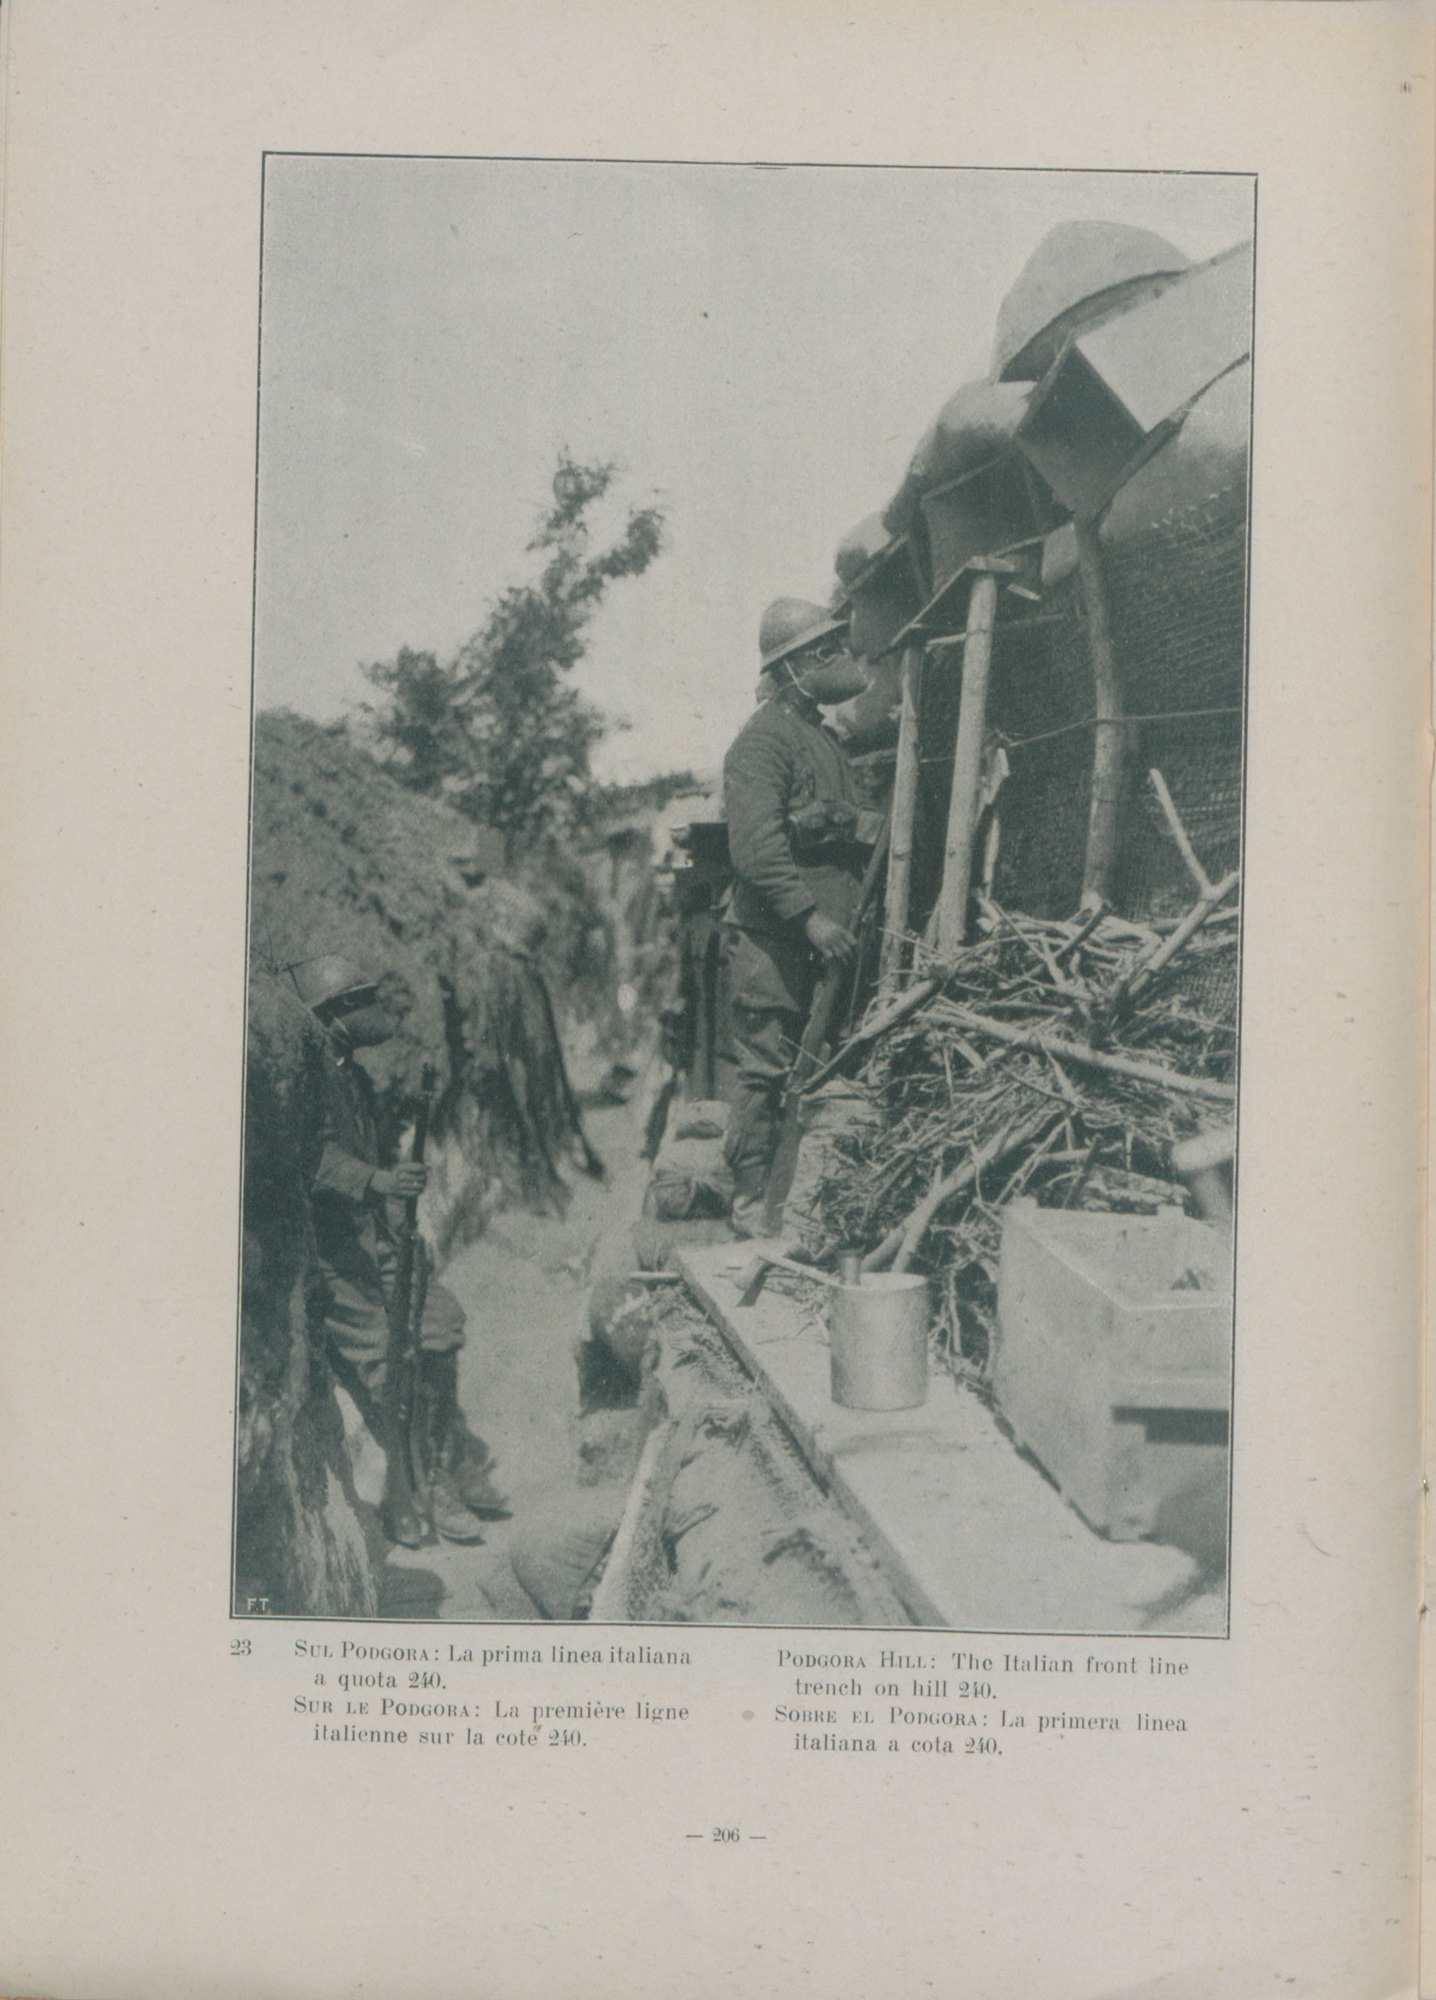 Italian army corps of Carabinieri in a trench on Podgora Hill, Gorizia at the Italian Front. They are facing the Austro-Hungarian army and wearing early rudimentary gas masks.